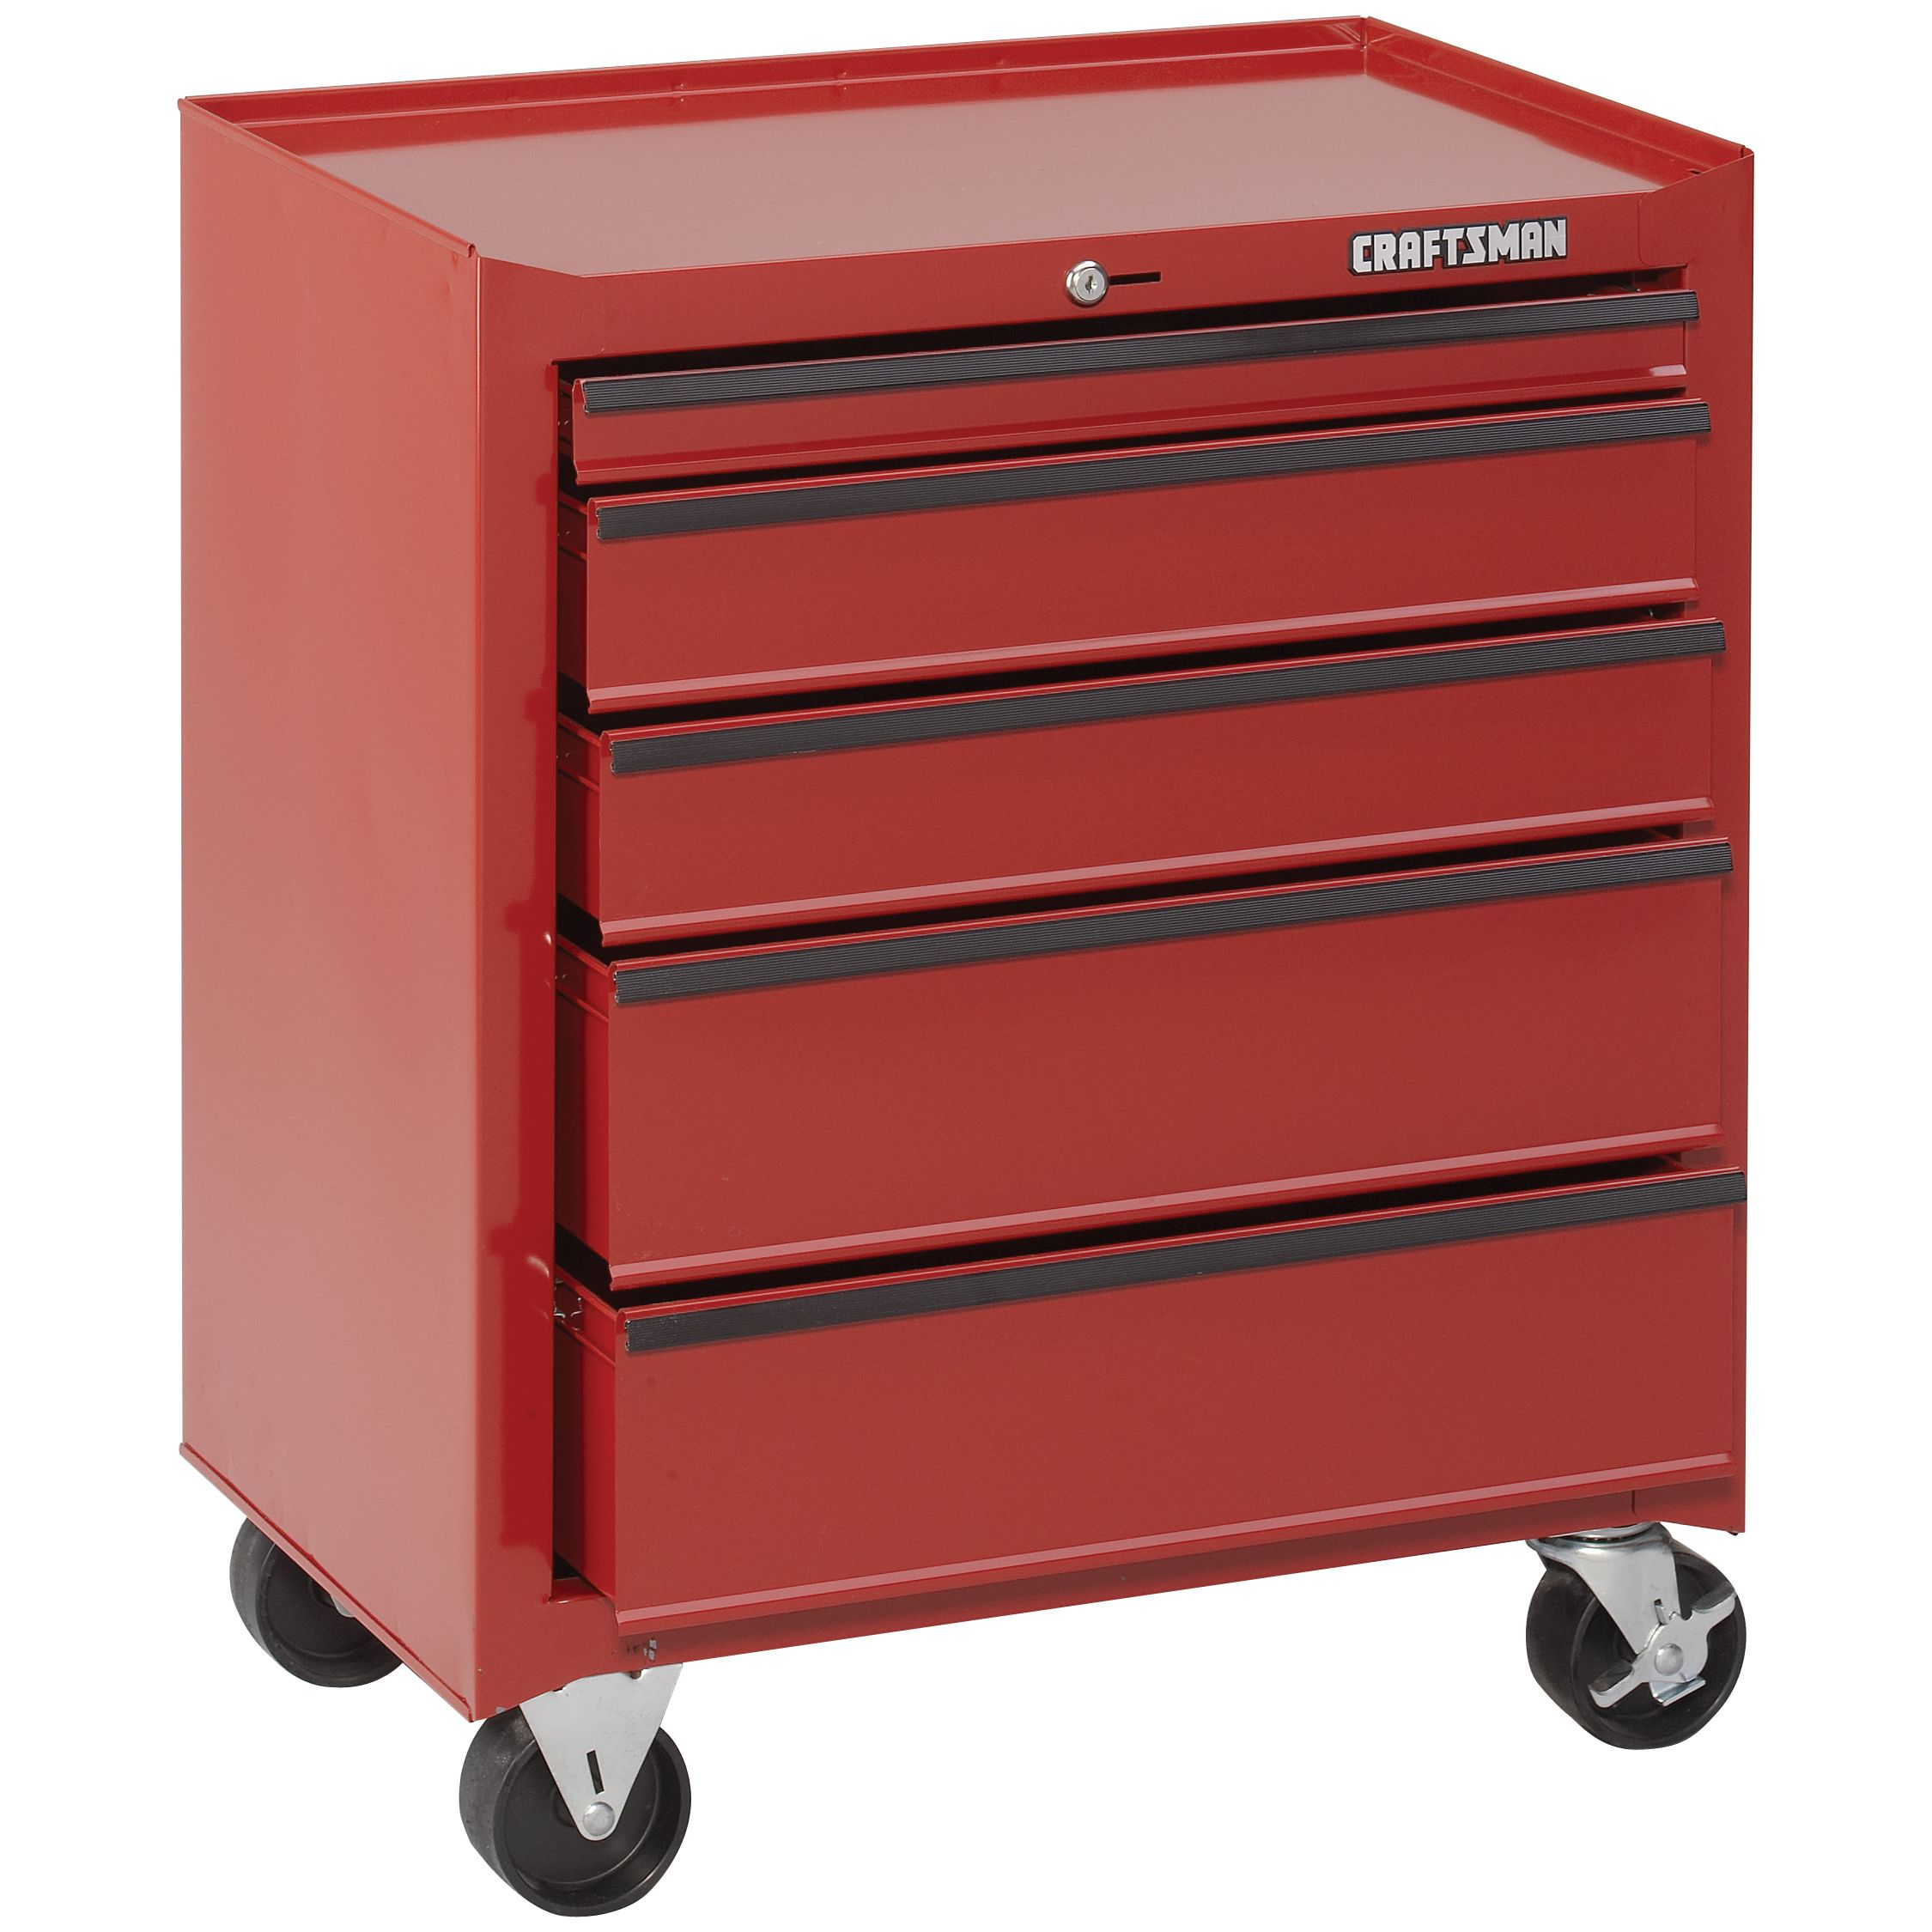 Craftsman 5-Drawer Homeowner Roll-Away with Accessories - Red